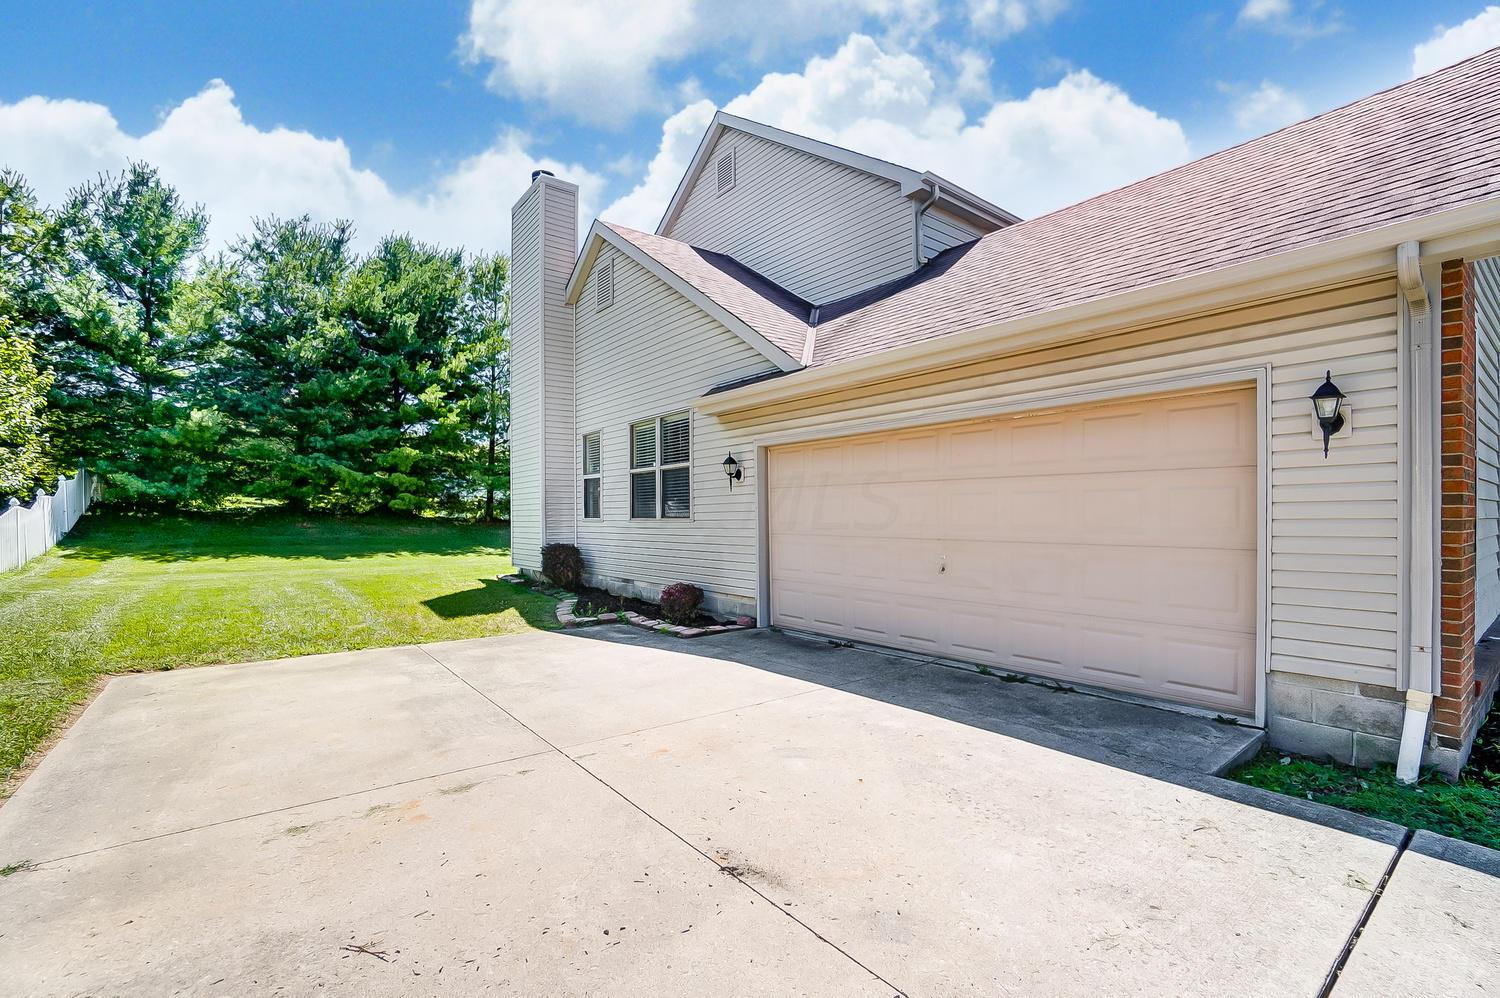 27 Bluegrass Drive, Pataskala, Ohio 43062, 4 Bedrooms Bedrooms, ,3 BathroomsBathrooms,Residential,For Sale,Bluegrass,220017086